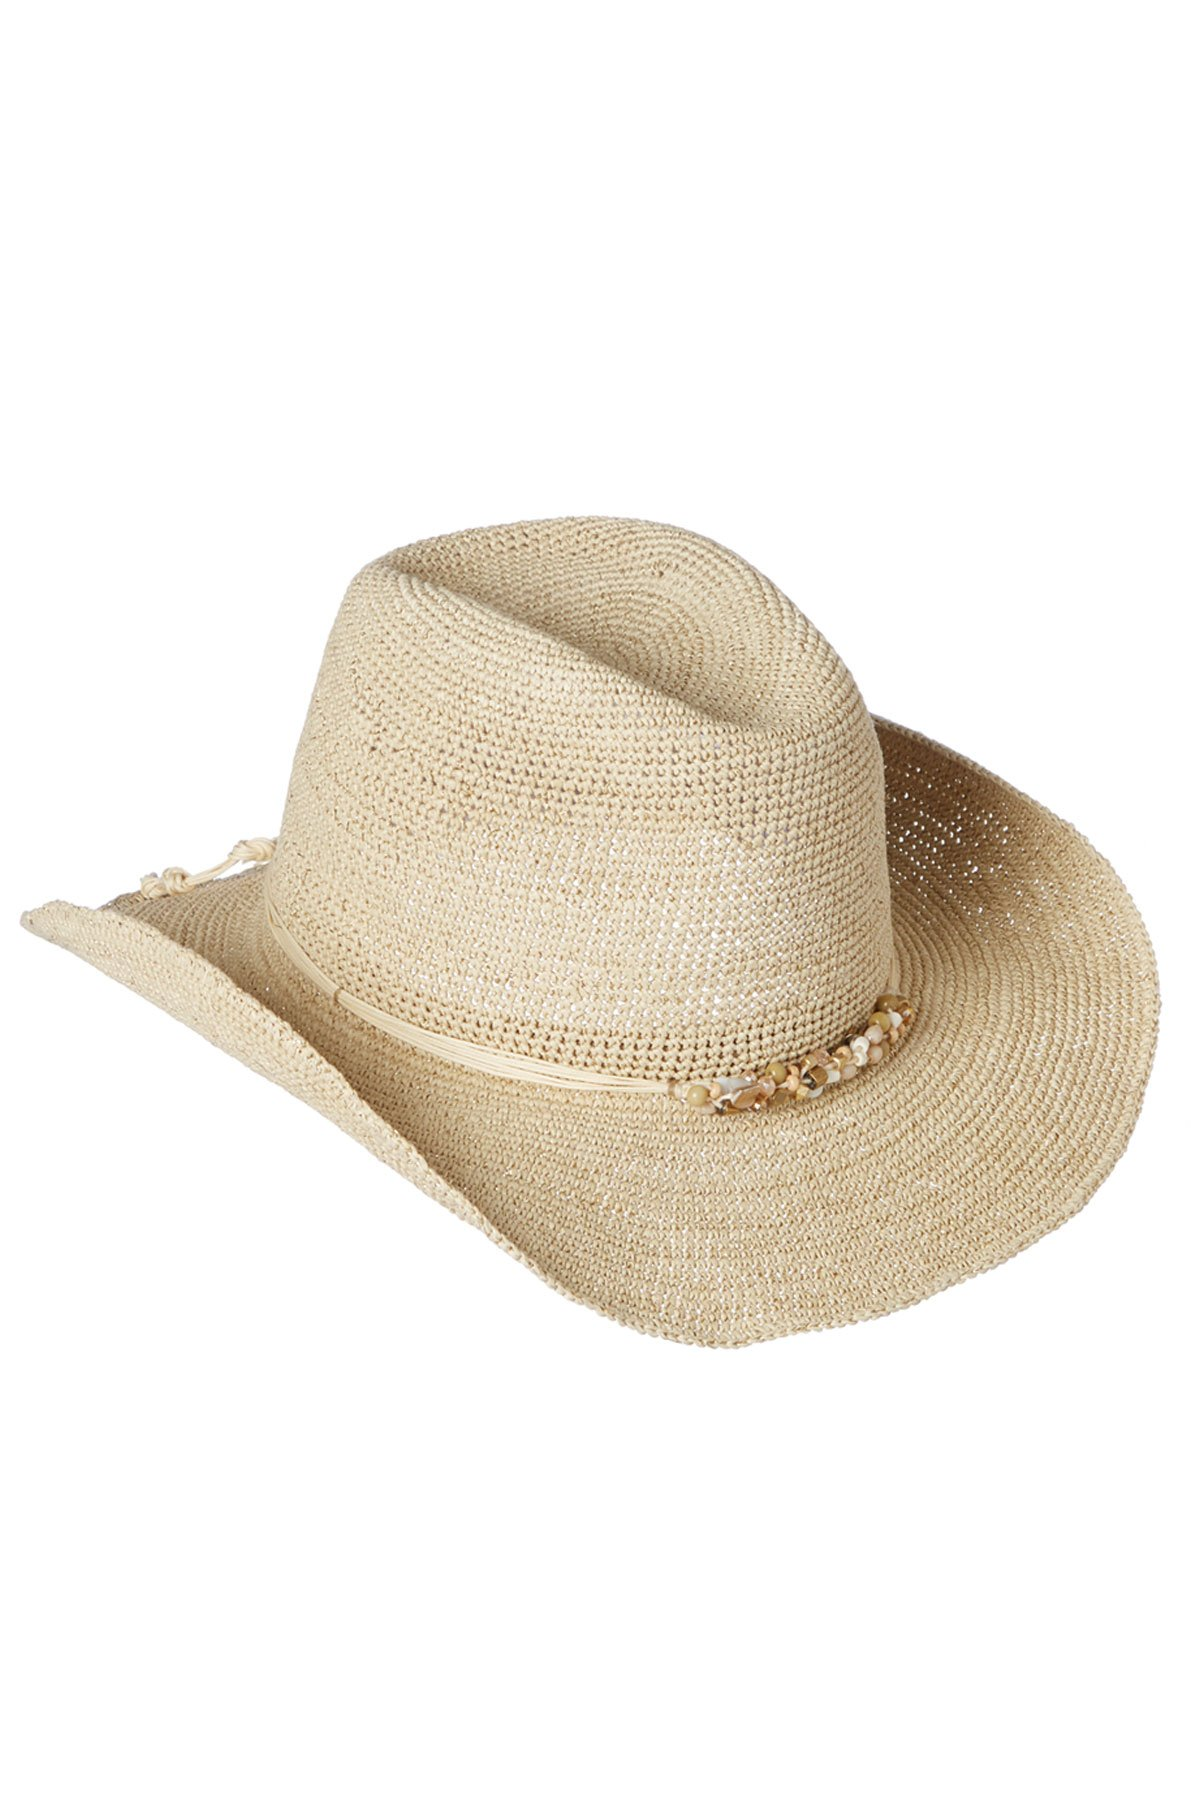 Beach by Florabella Women's Josie Cowboy Hat Natural/Gold One by Beach by Florabella